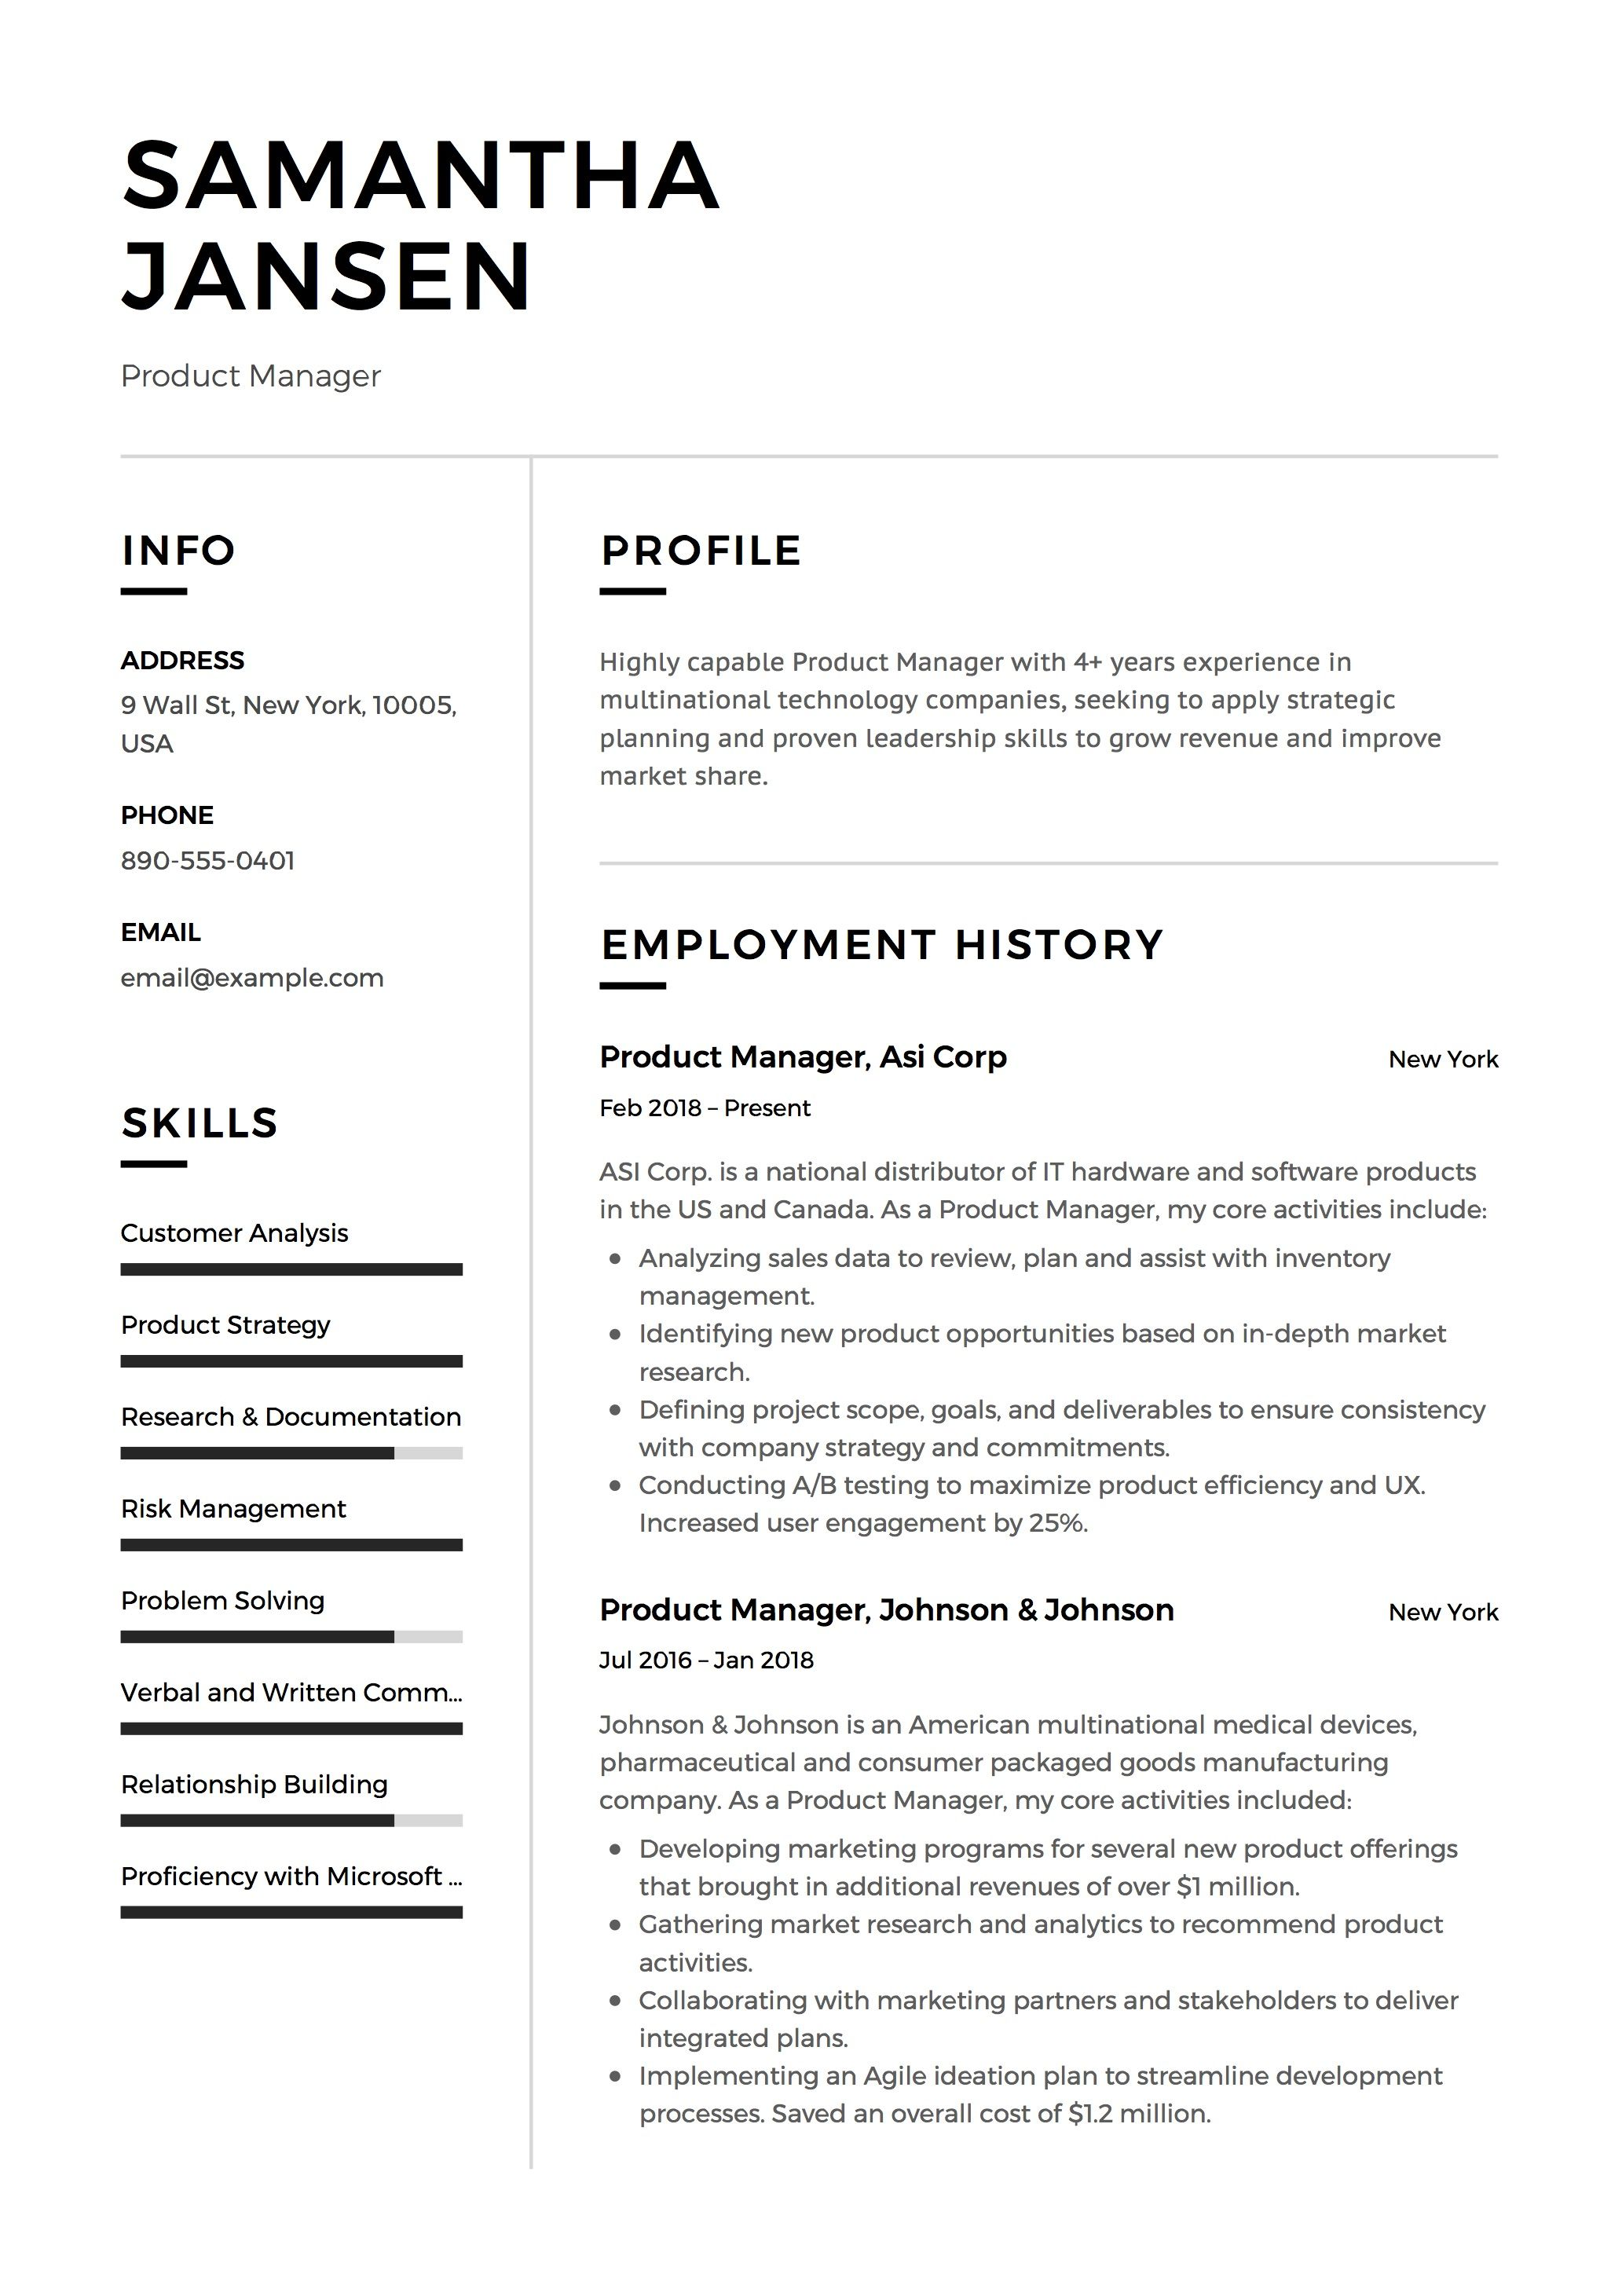 Product Manager Resume Sample Template Example Cv Formal Design Resume Template Examples Job Resume Examples Student Resume Template